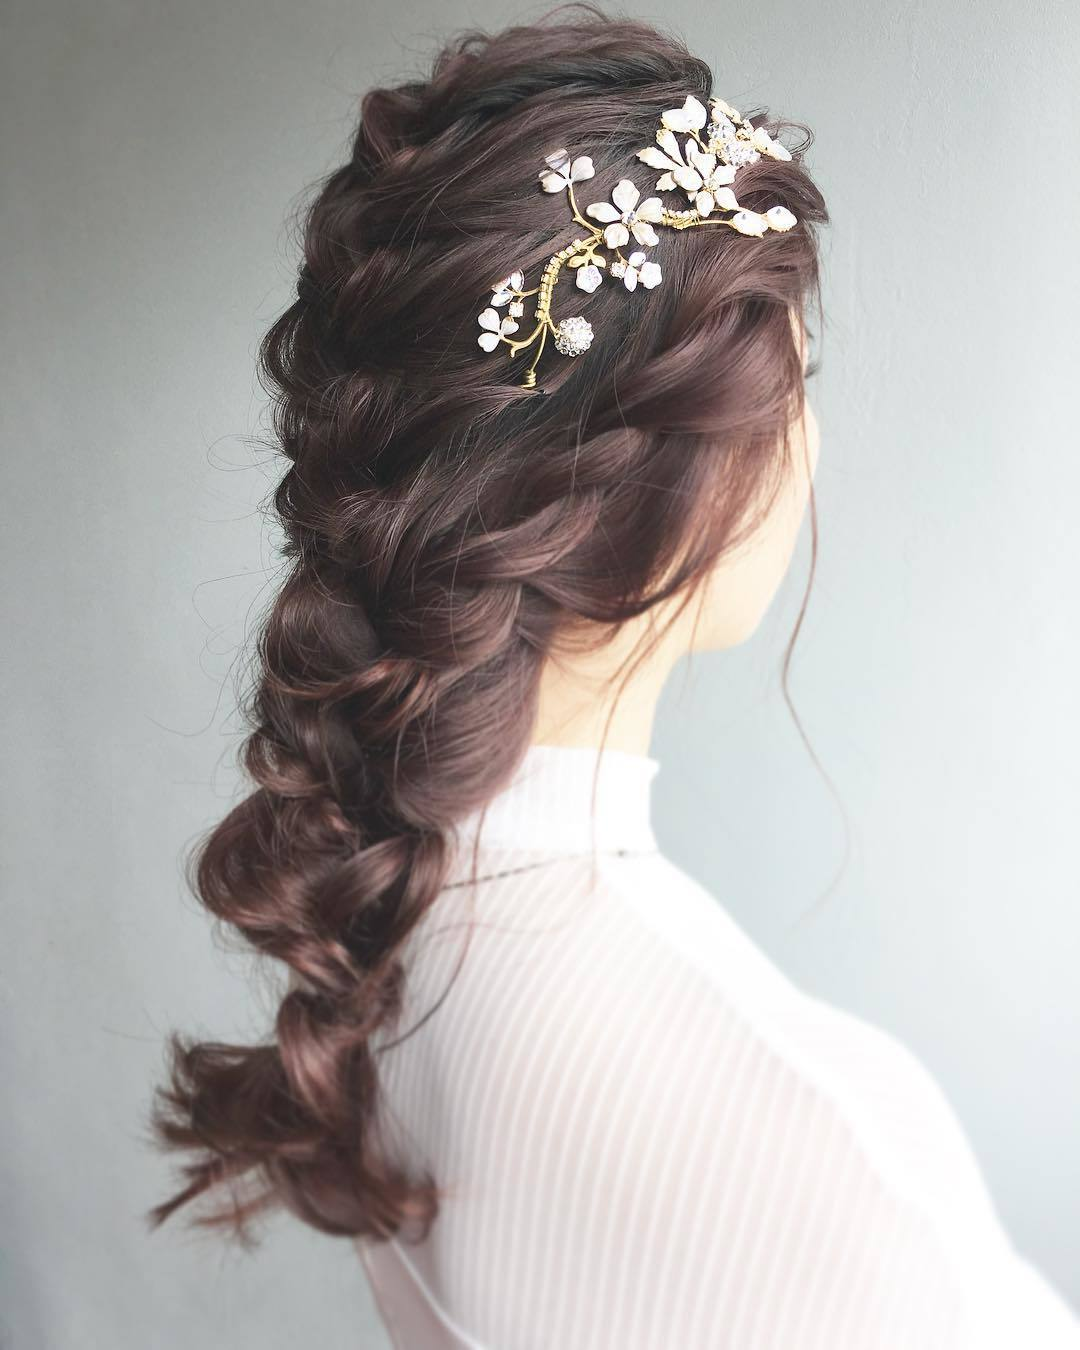 55 Stunning Wedding Hairstyles Best Bridal Hair Ideas For 2020